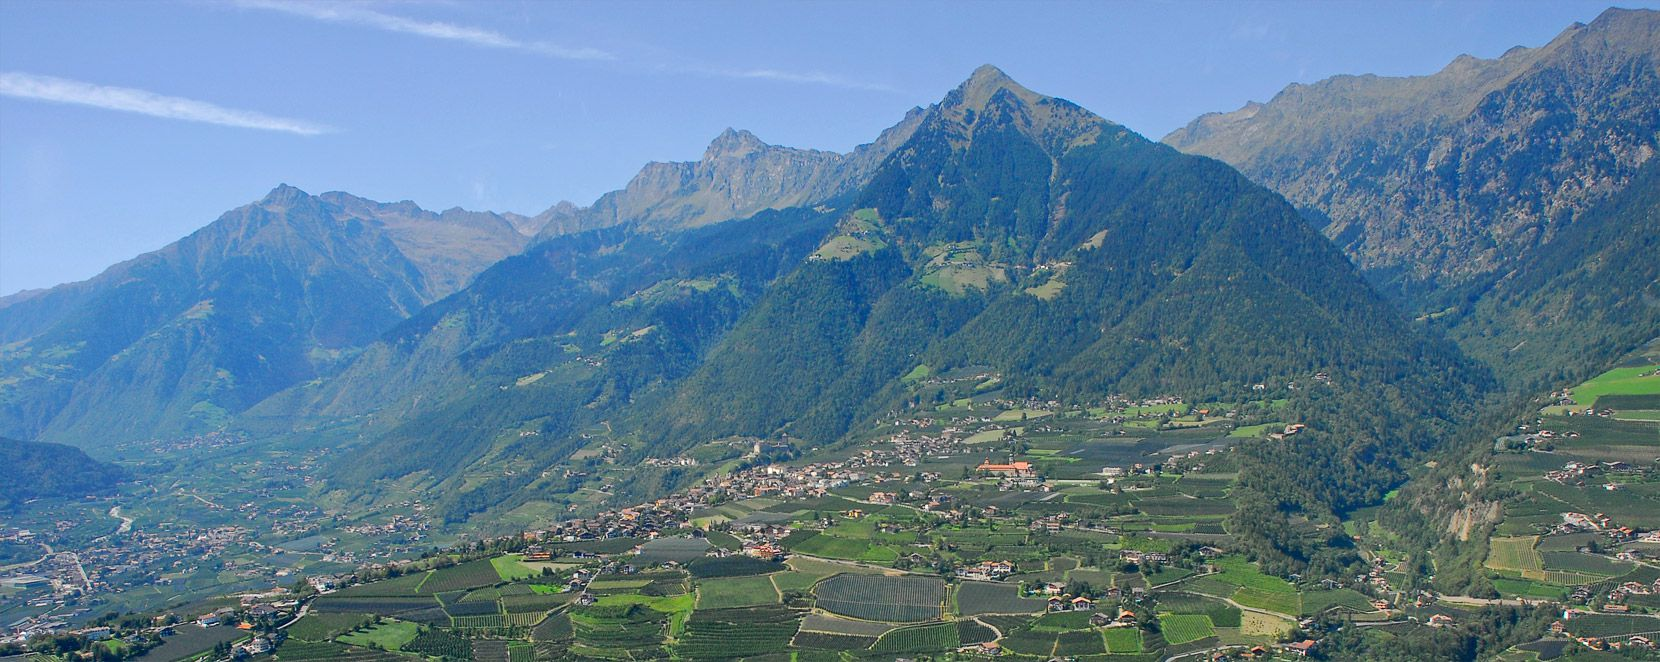 Holiday Tirol near Merano South Tyrol